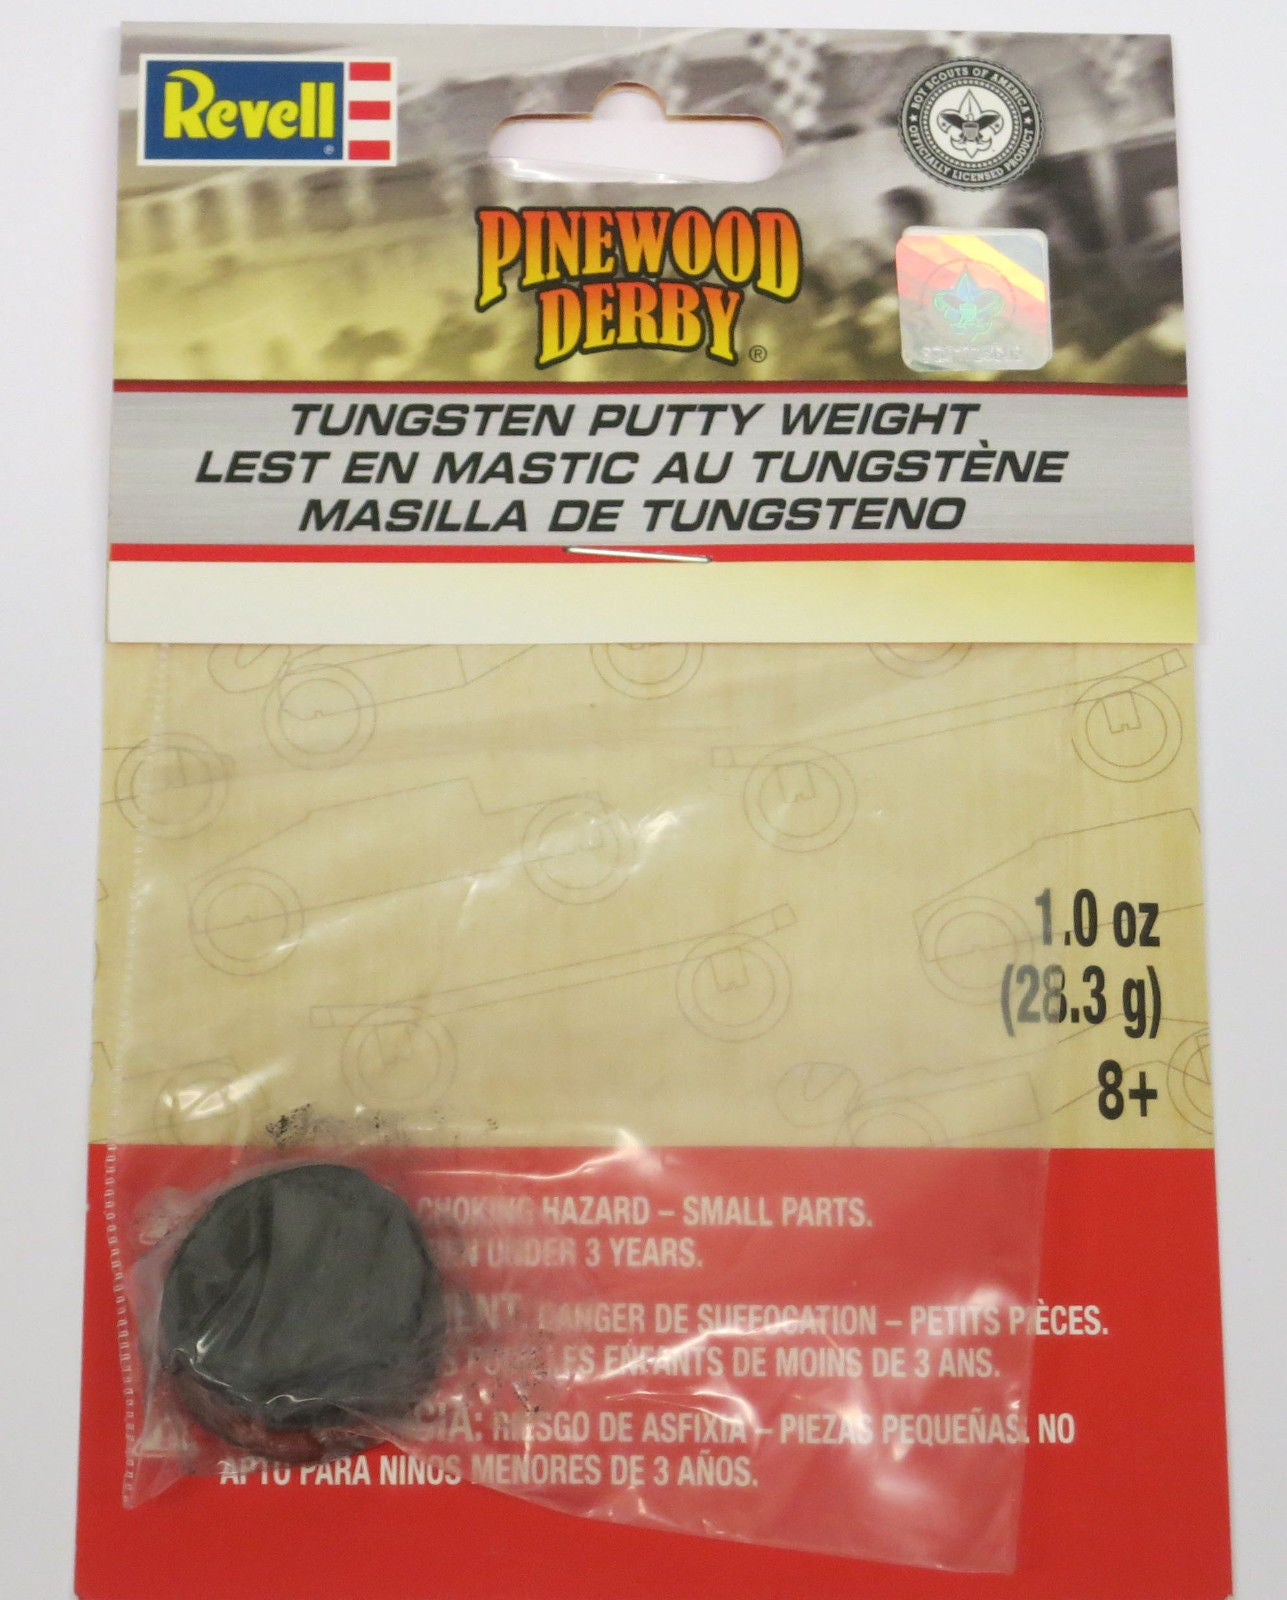 Revell Pinecar Pinewood Derby Tungsten Putty 1 oz RMXY9428